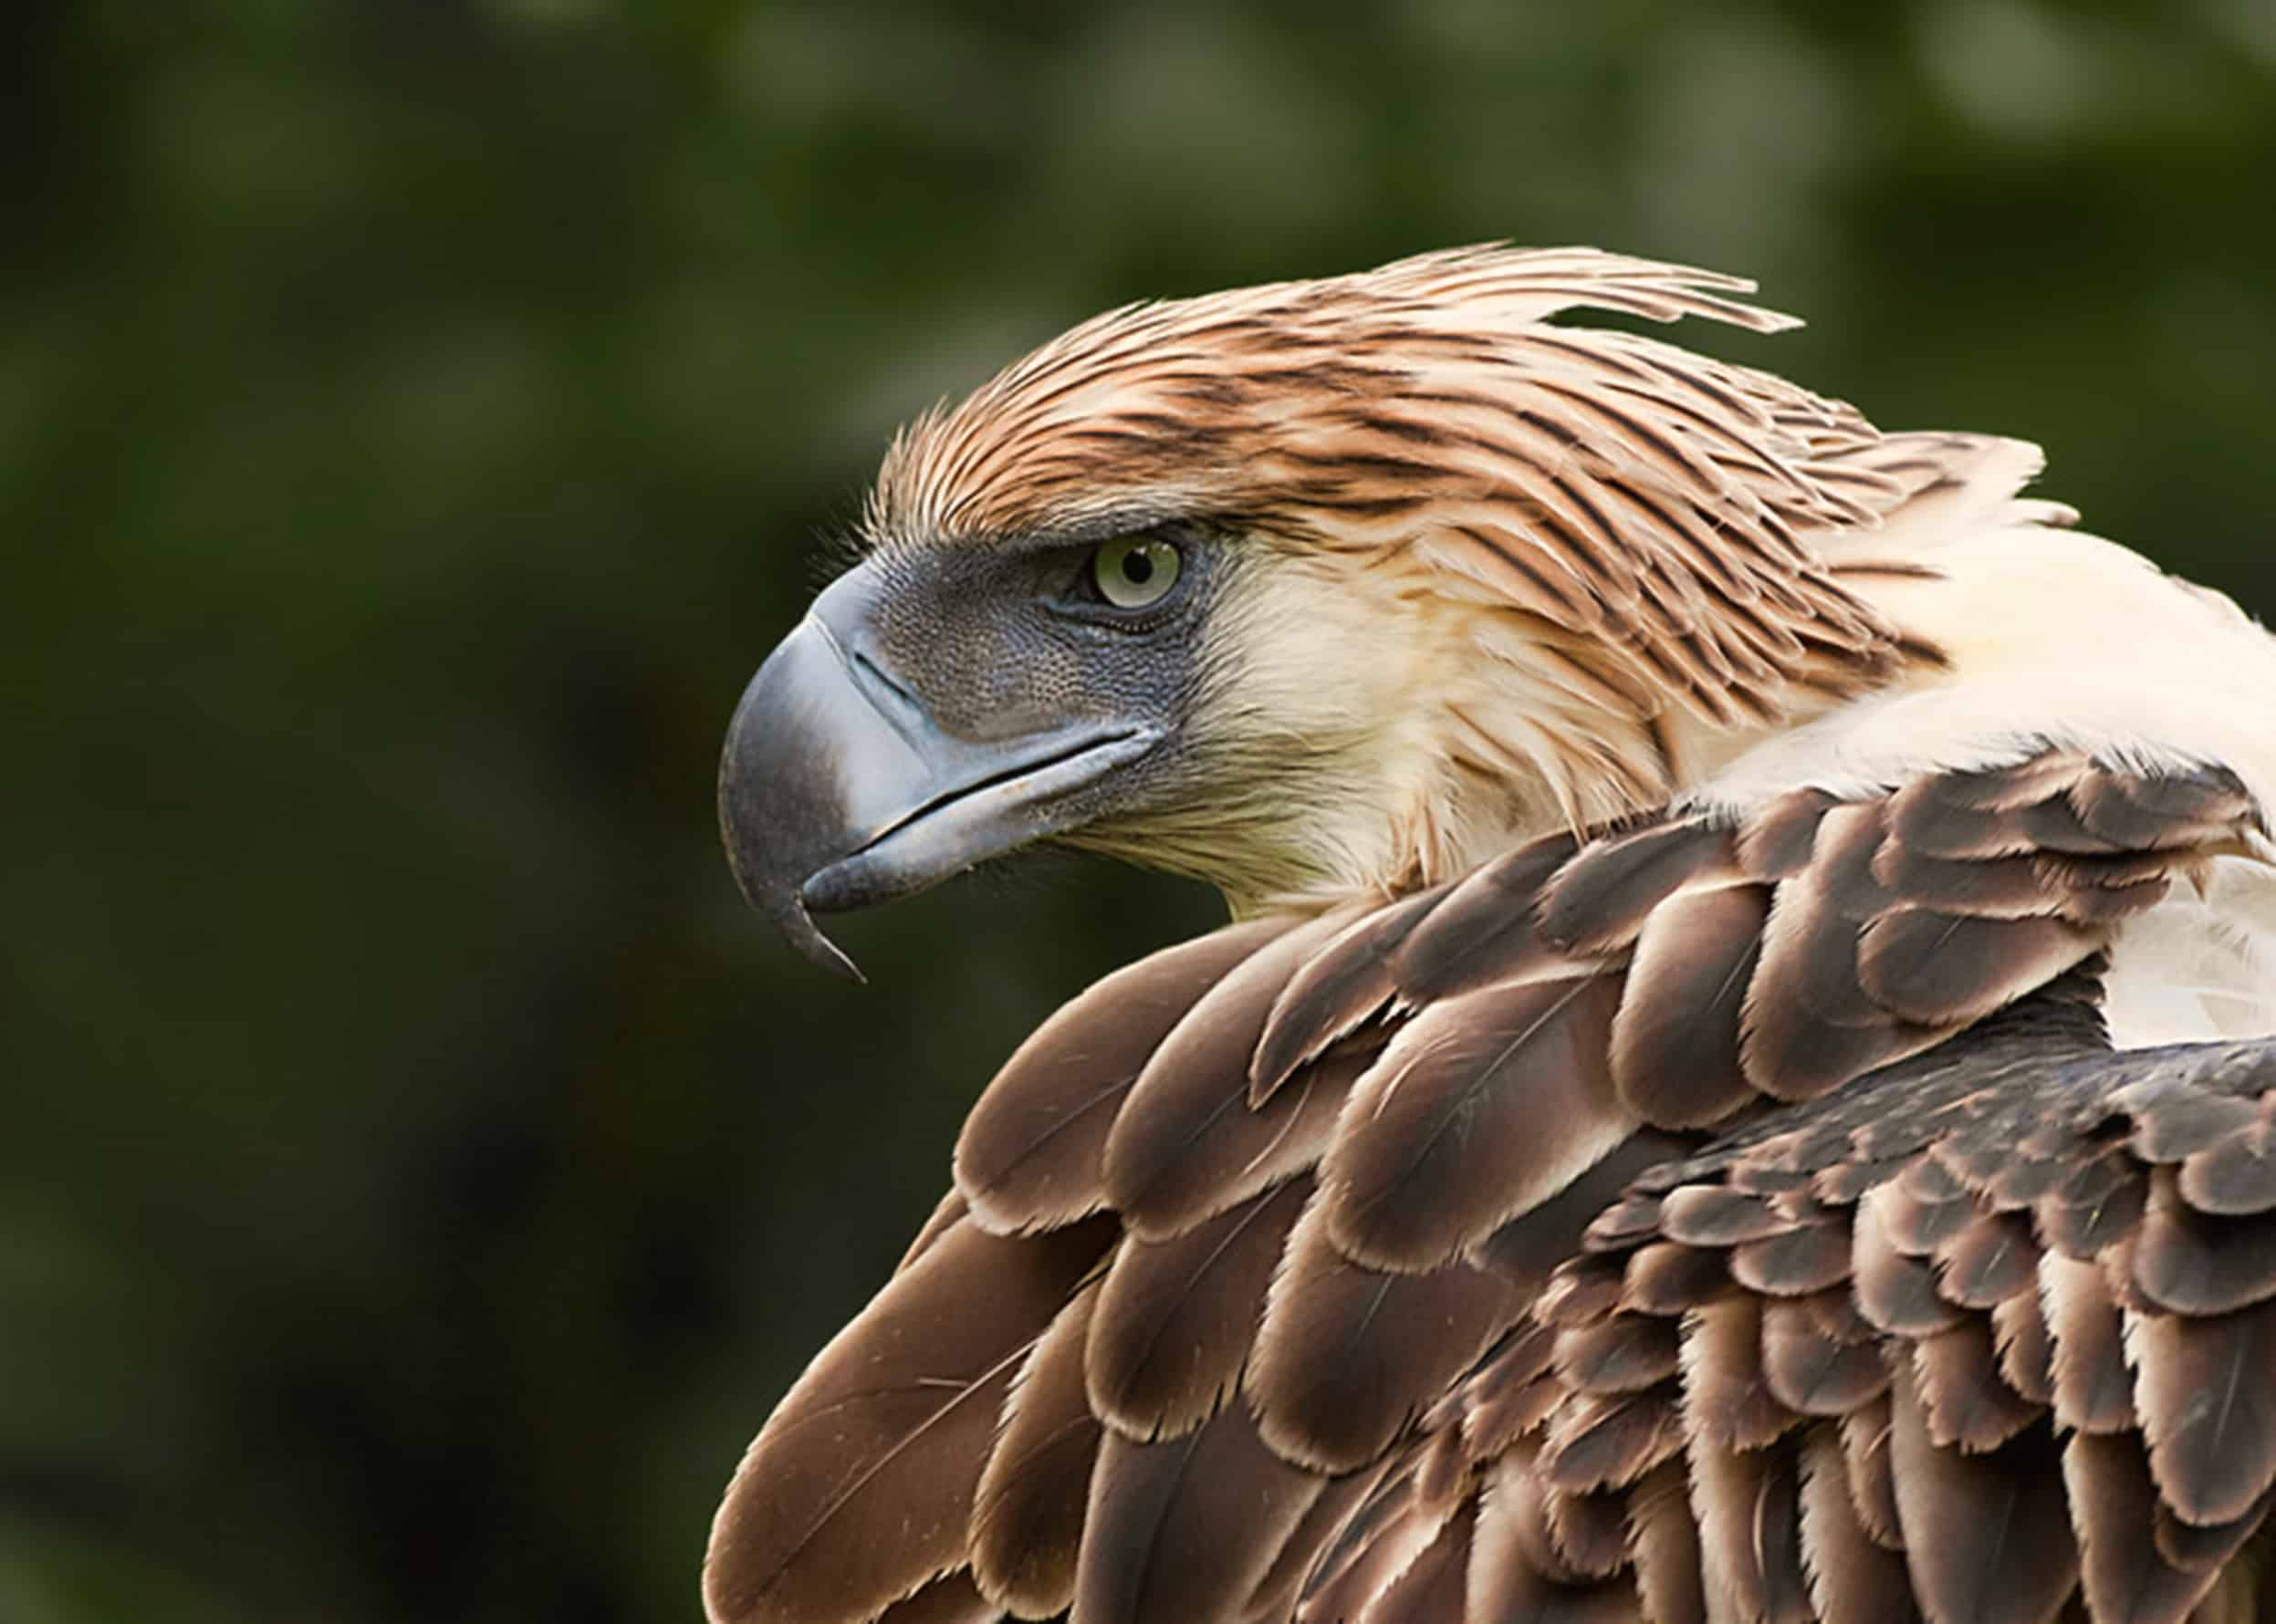 What are some interesting Philippine Eagle facts?